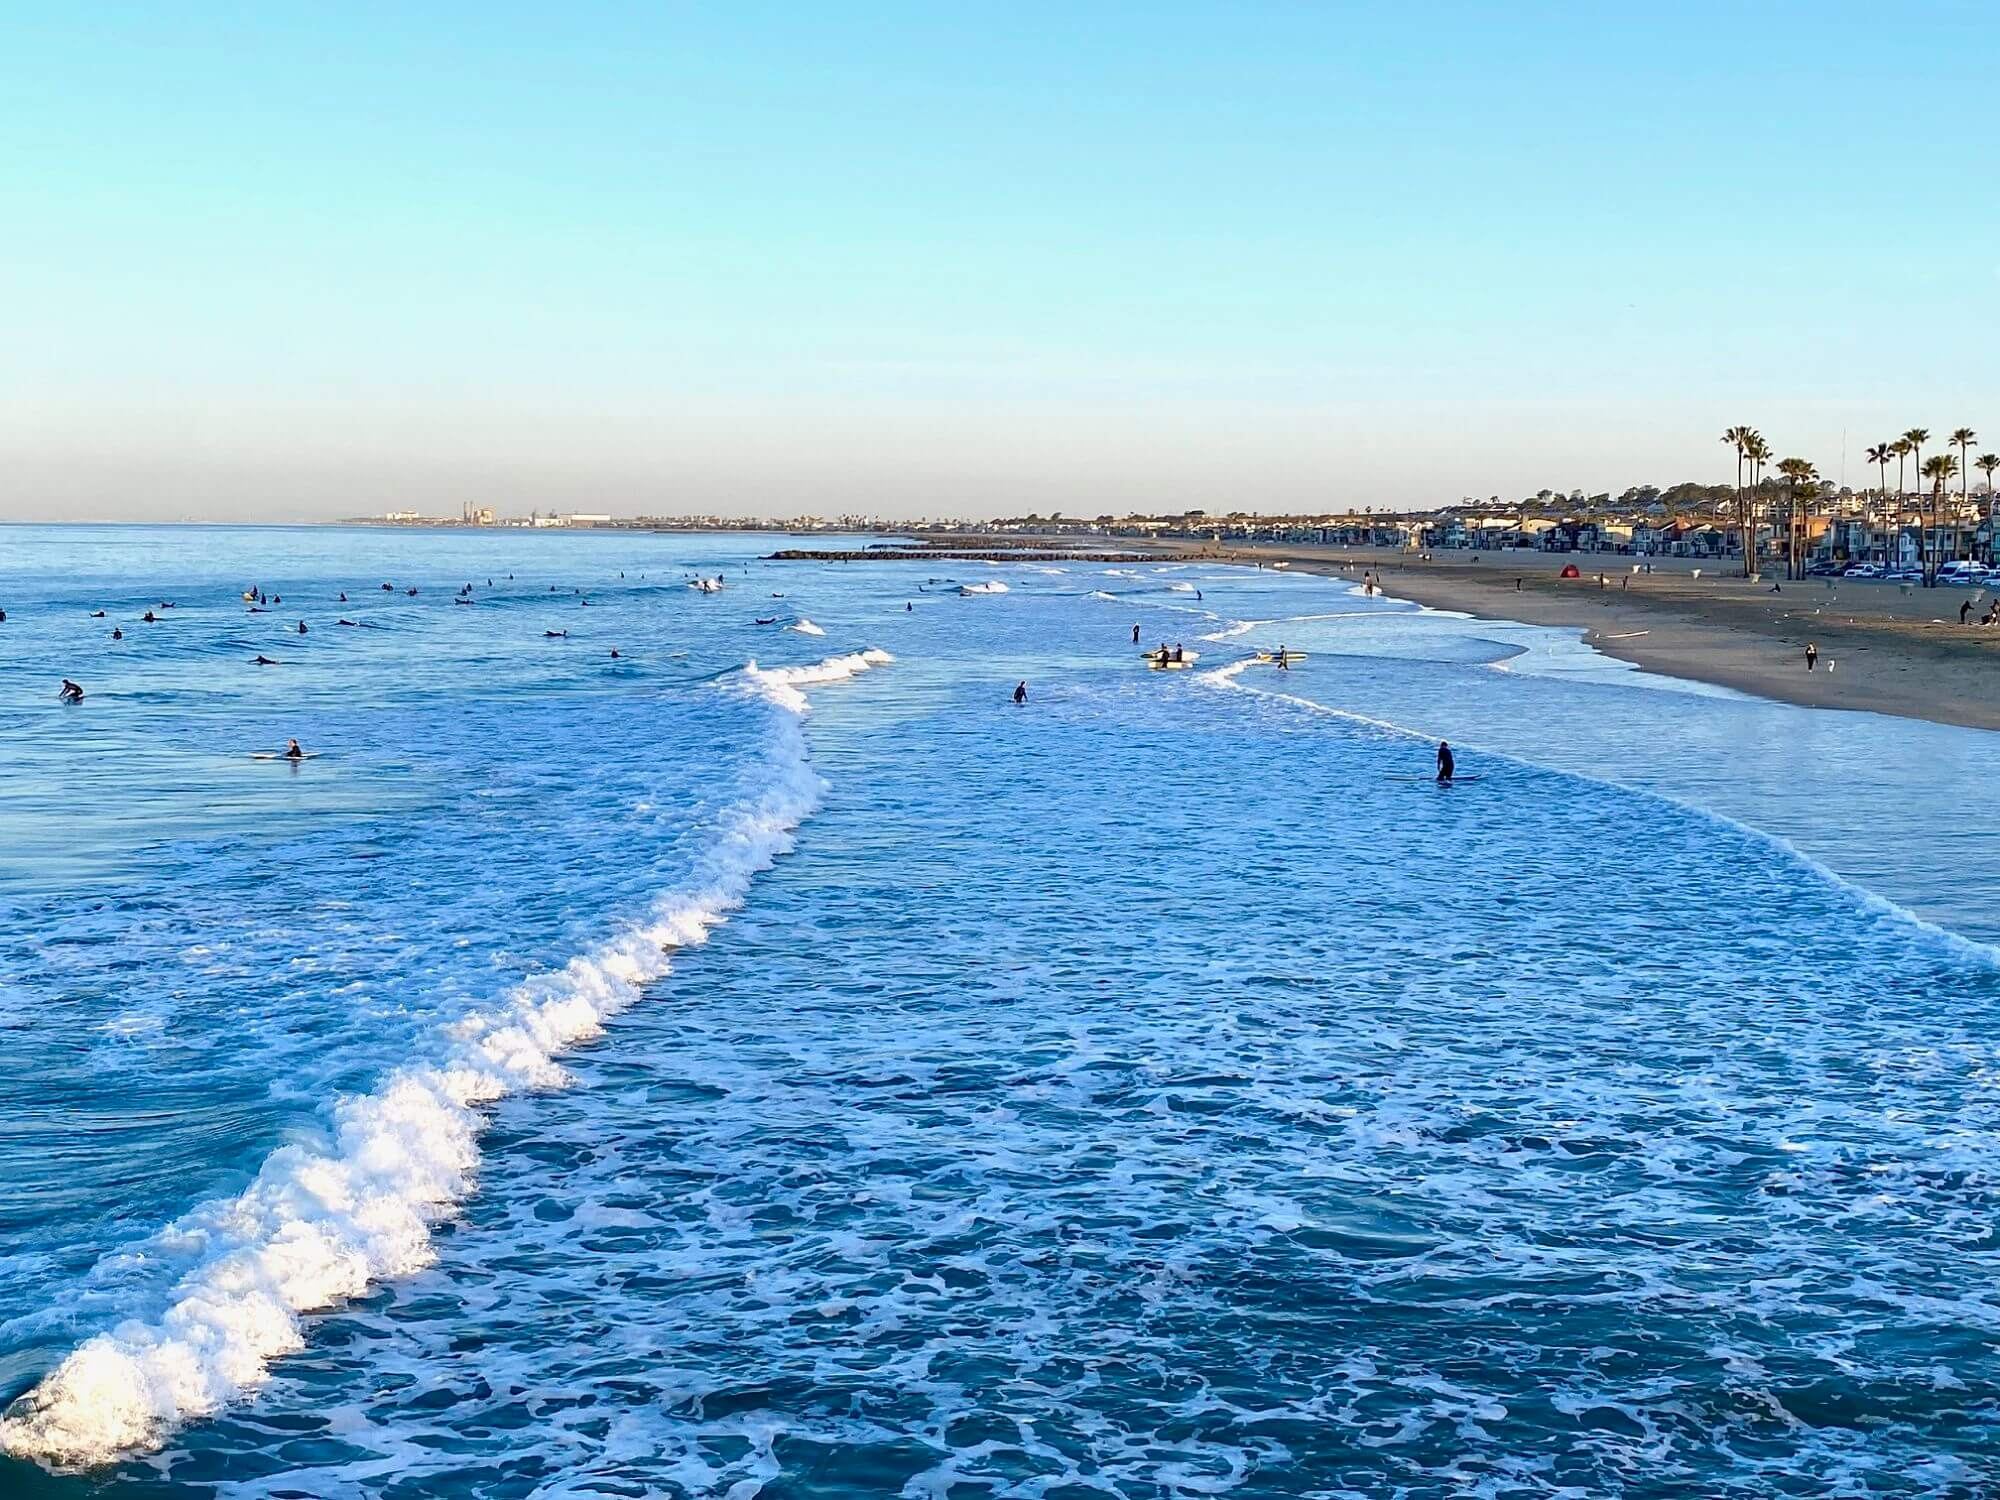 Watching surfers from the Newport Pier